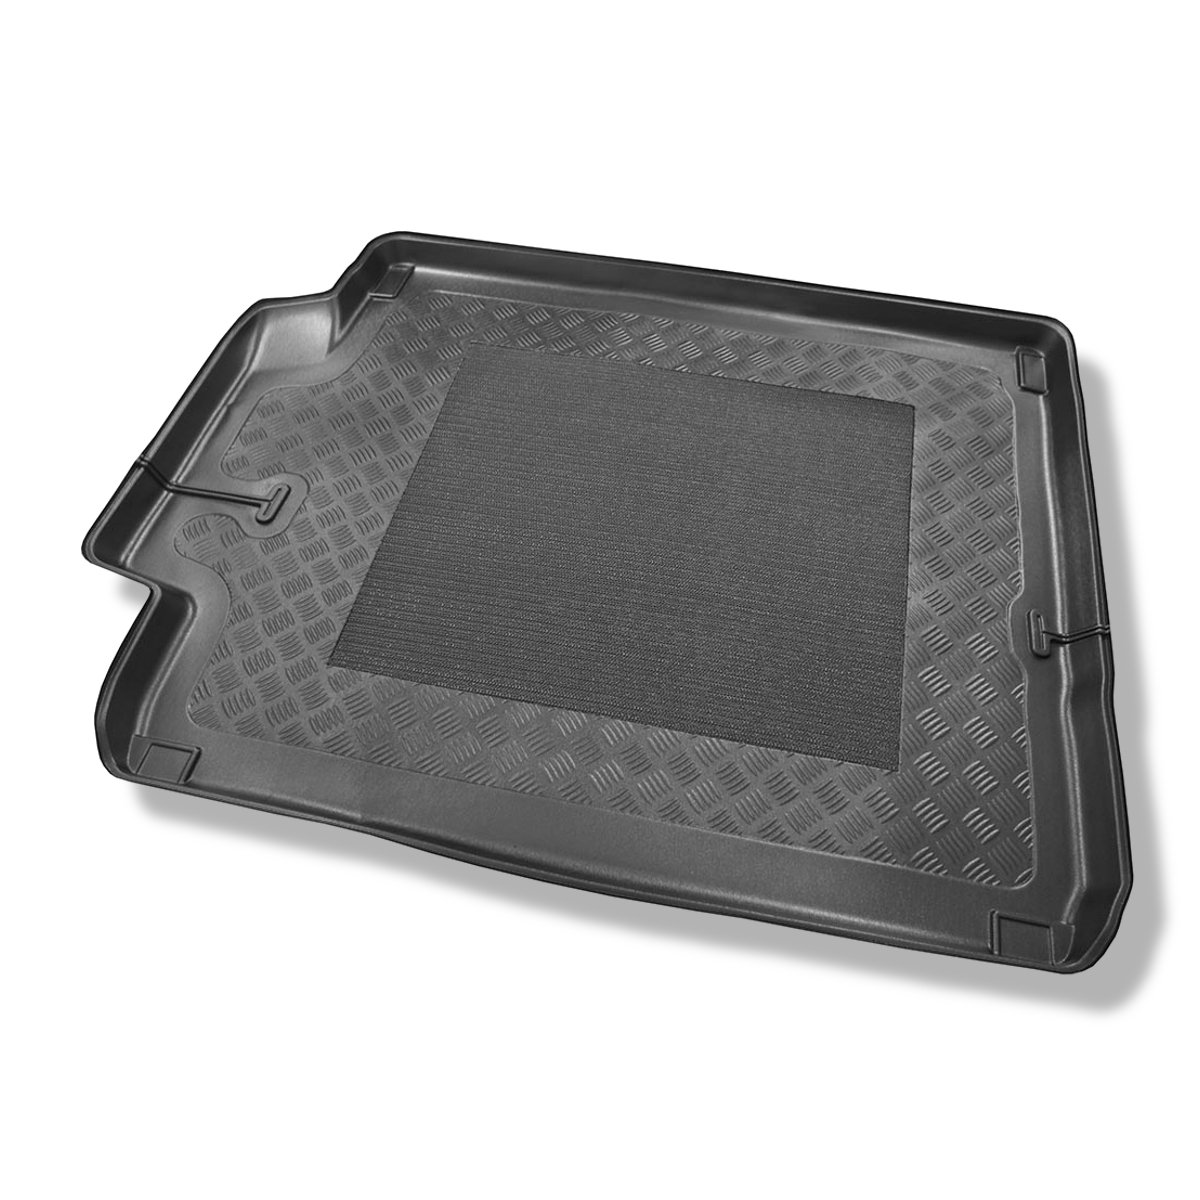 Fits perfectly Odourless Mossa Car trunk mat 5902538570602 boot liner